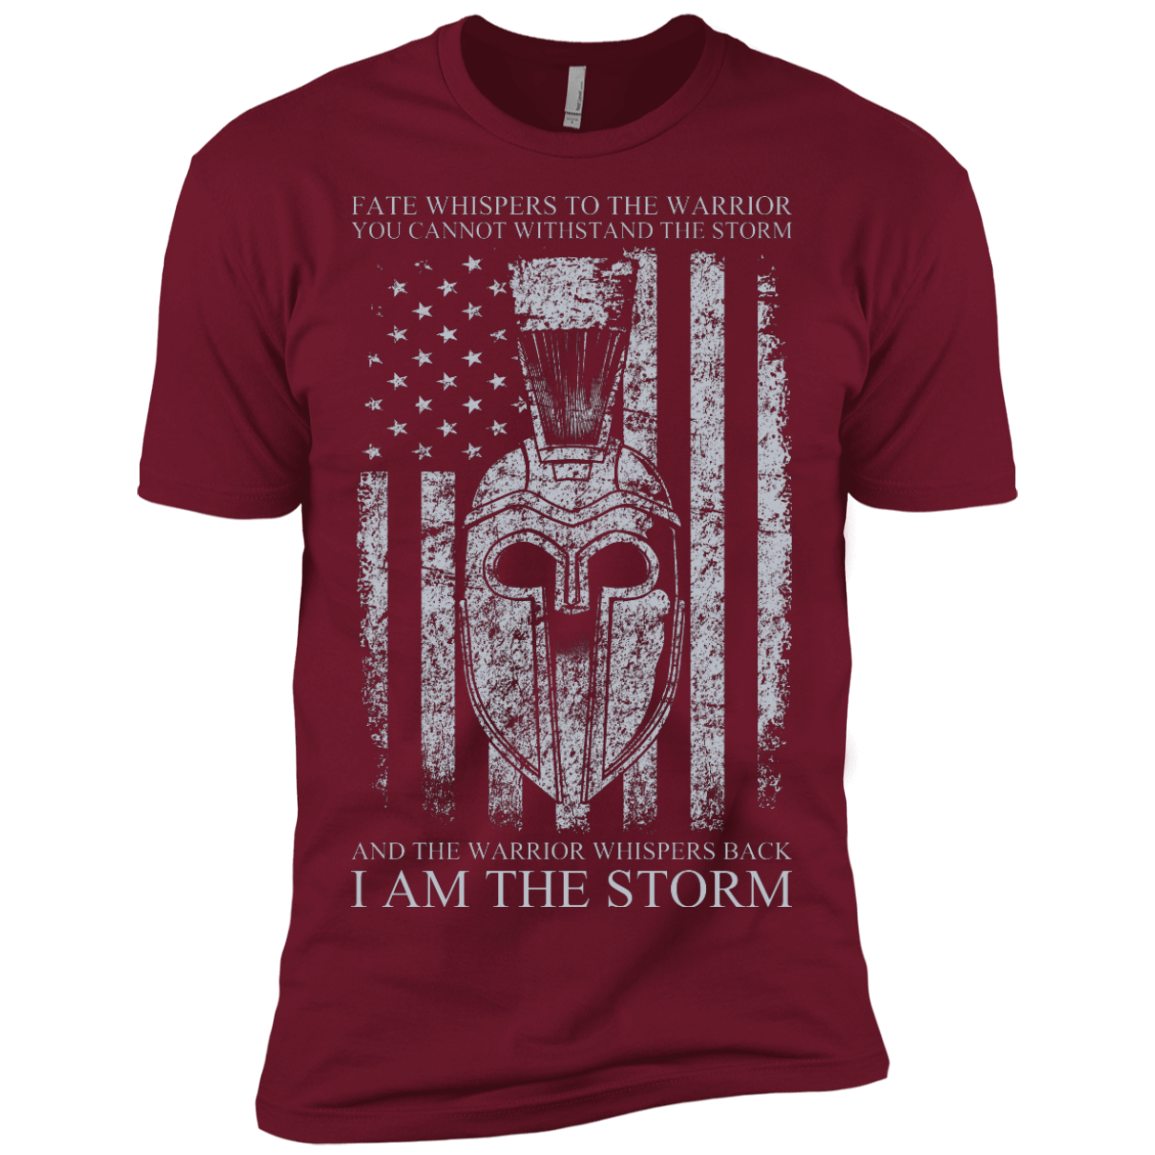 Warrior Tshirt I am the storm, Fate whispers to the warrior